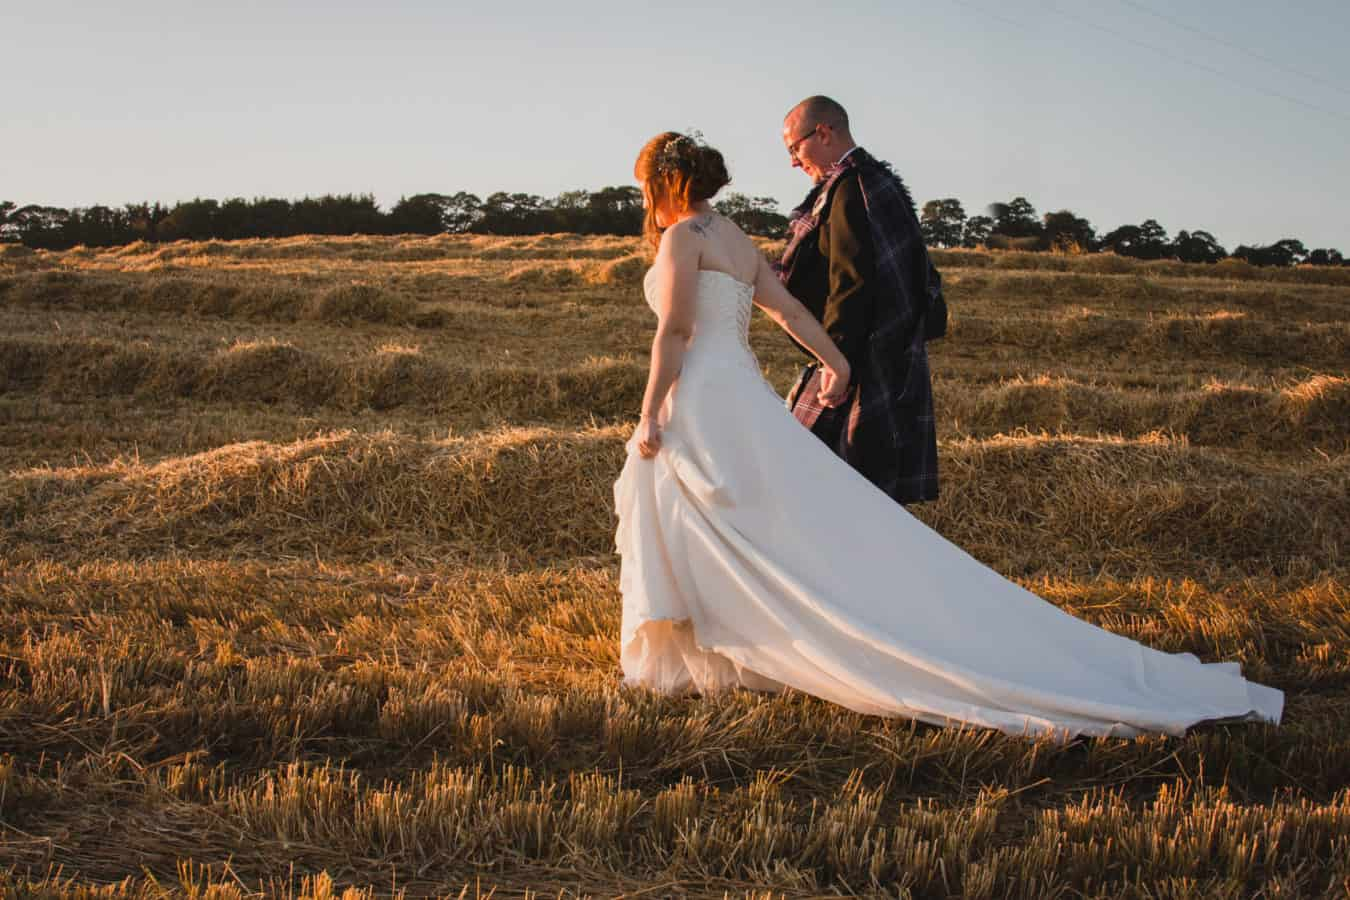 kcrichton-photography-scottish-edinburgh-wedding-photographer-supplier-bride-groom-sunset